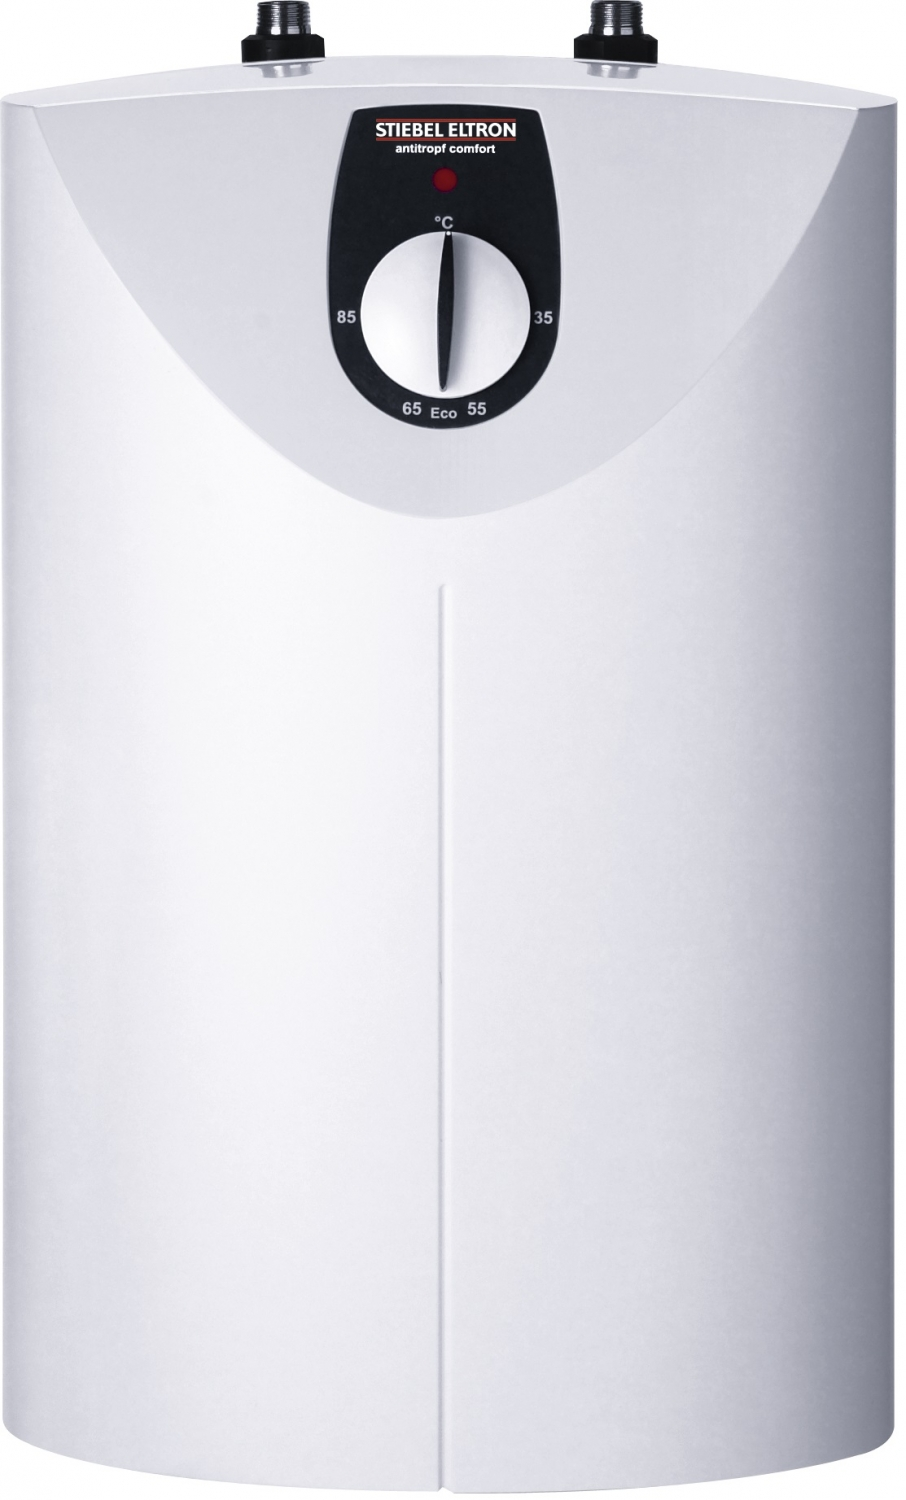 Stiebel Eltron close-in boilers